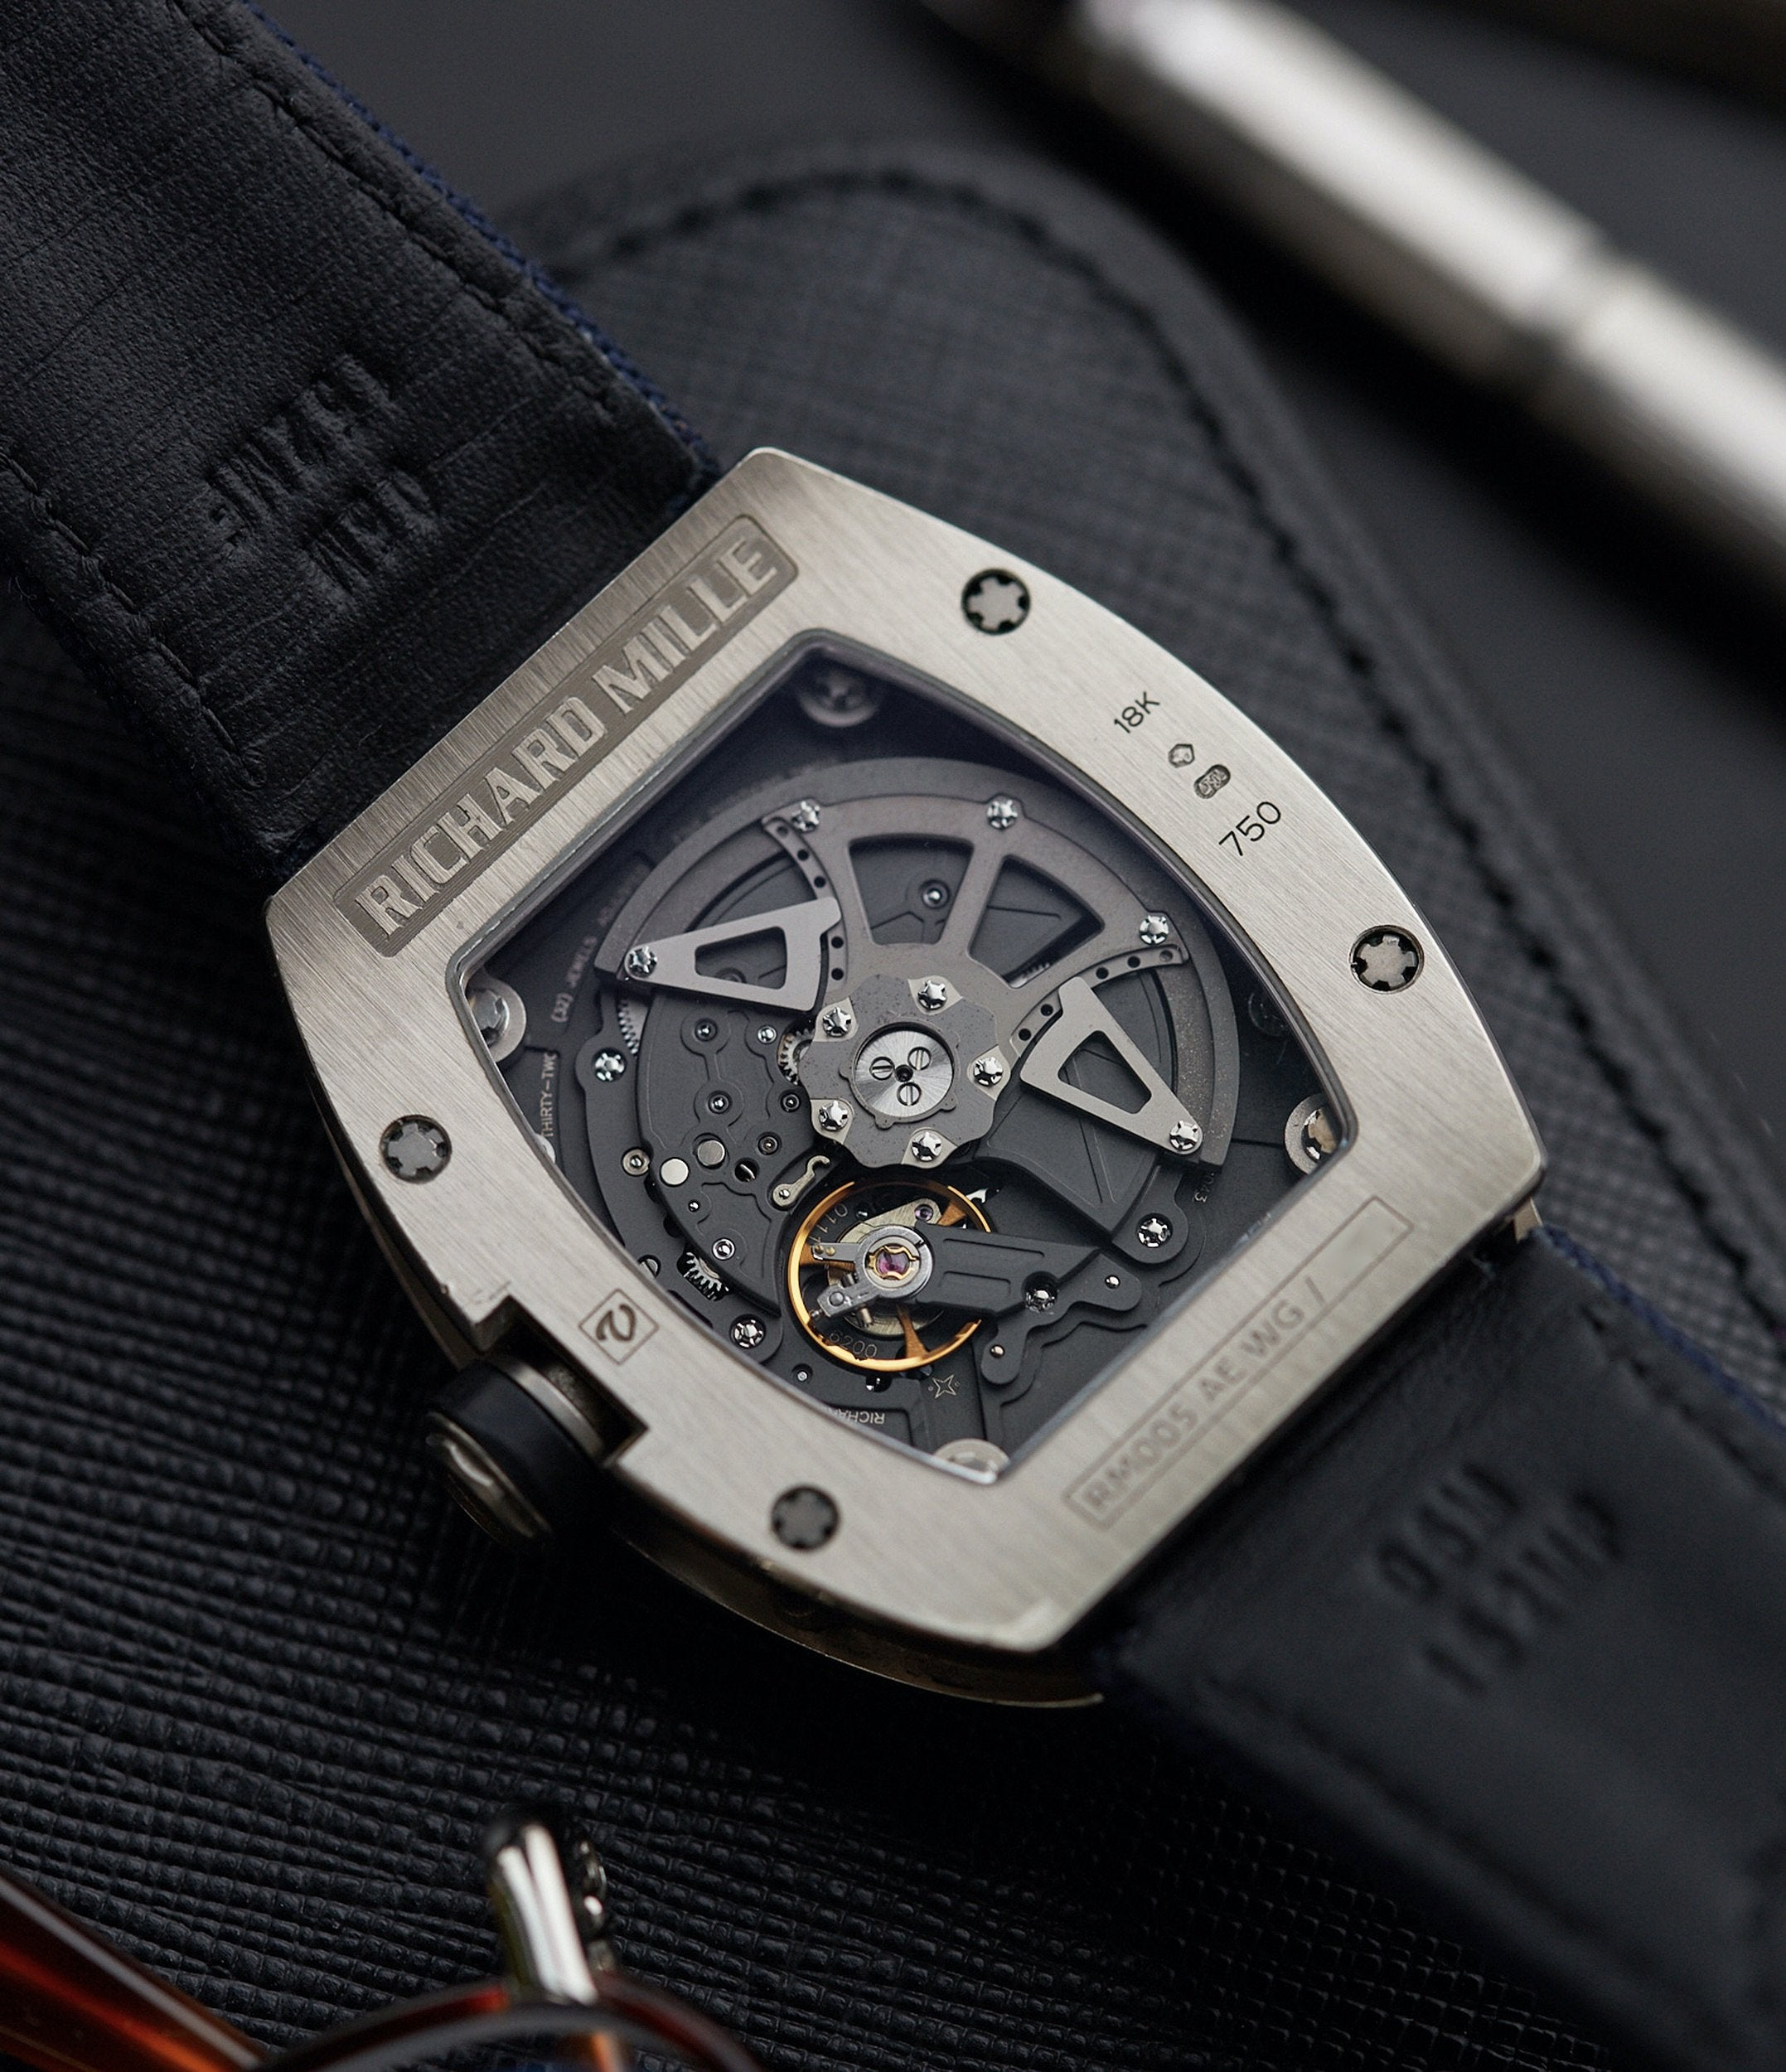 RMAS7 calibre movement Richard Mille RM005 AE WG white gold skeletonised men's luxury sports watch for sale online A Collected Man London UK specialist independent watchmakers